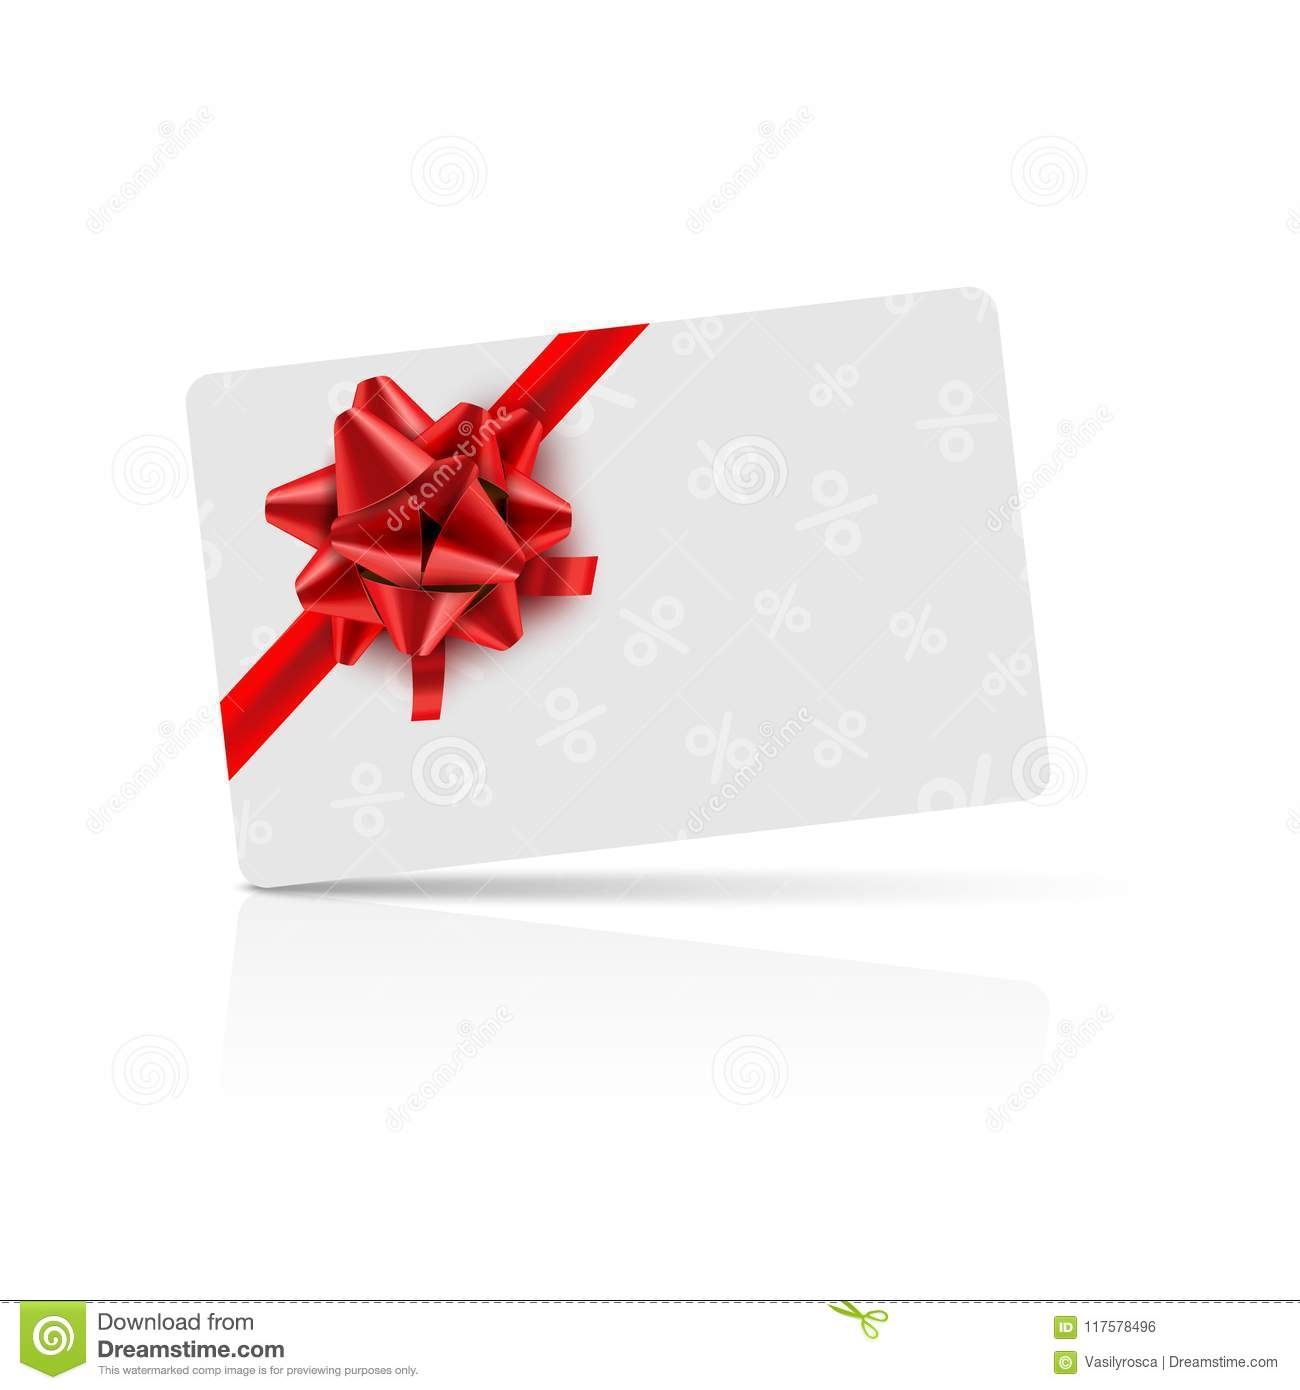 Gift card with red bow and ribbon. Coupon gift card celebration design. Holiday vector card